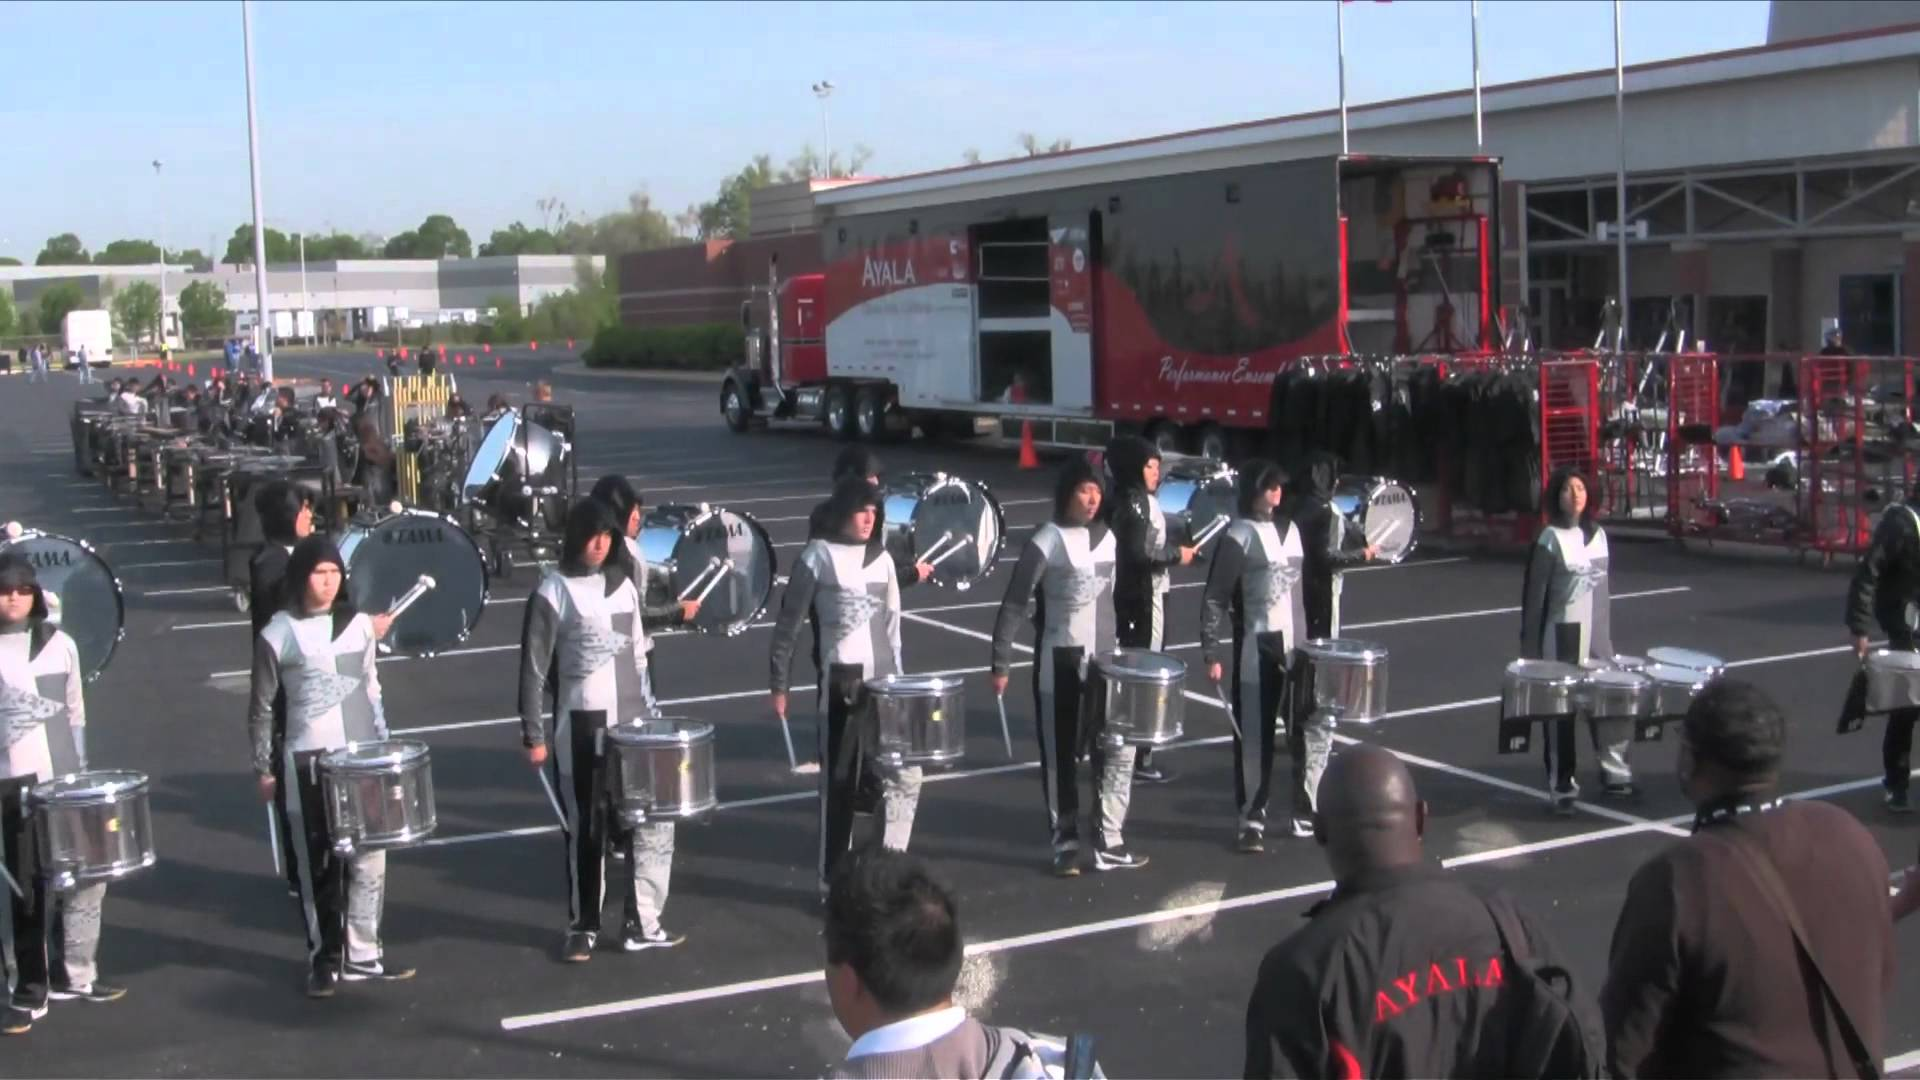 2012 Ayala Finals Book 1 HD